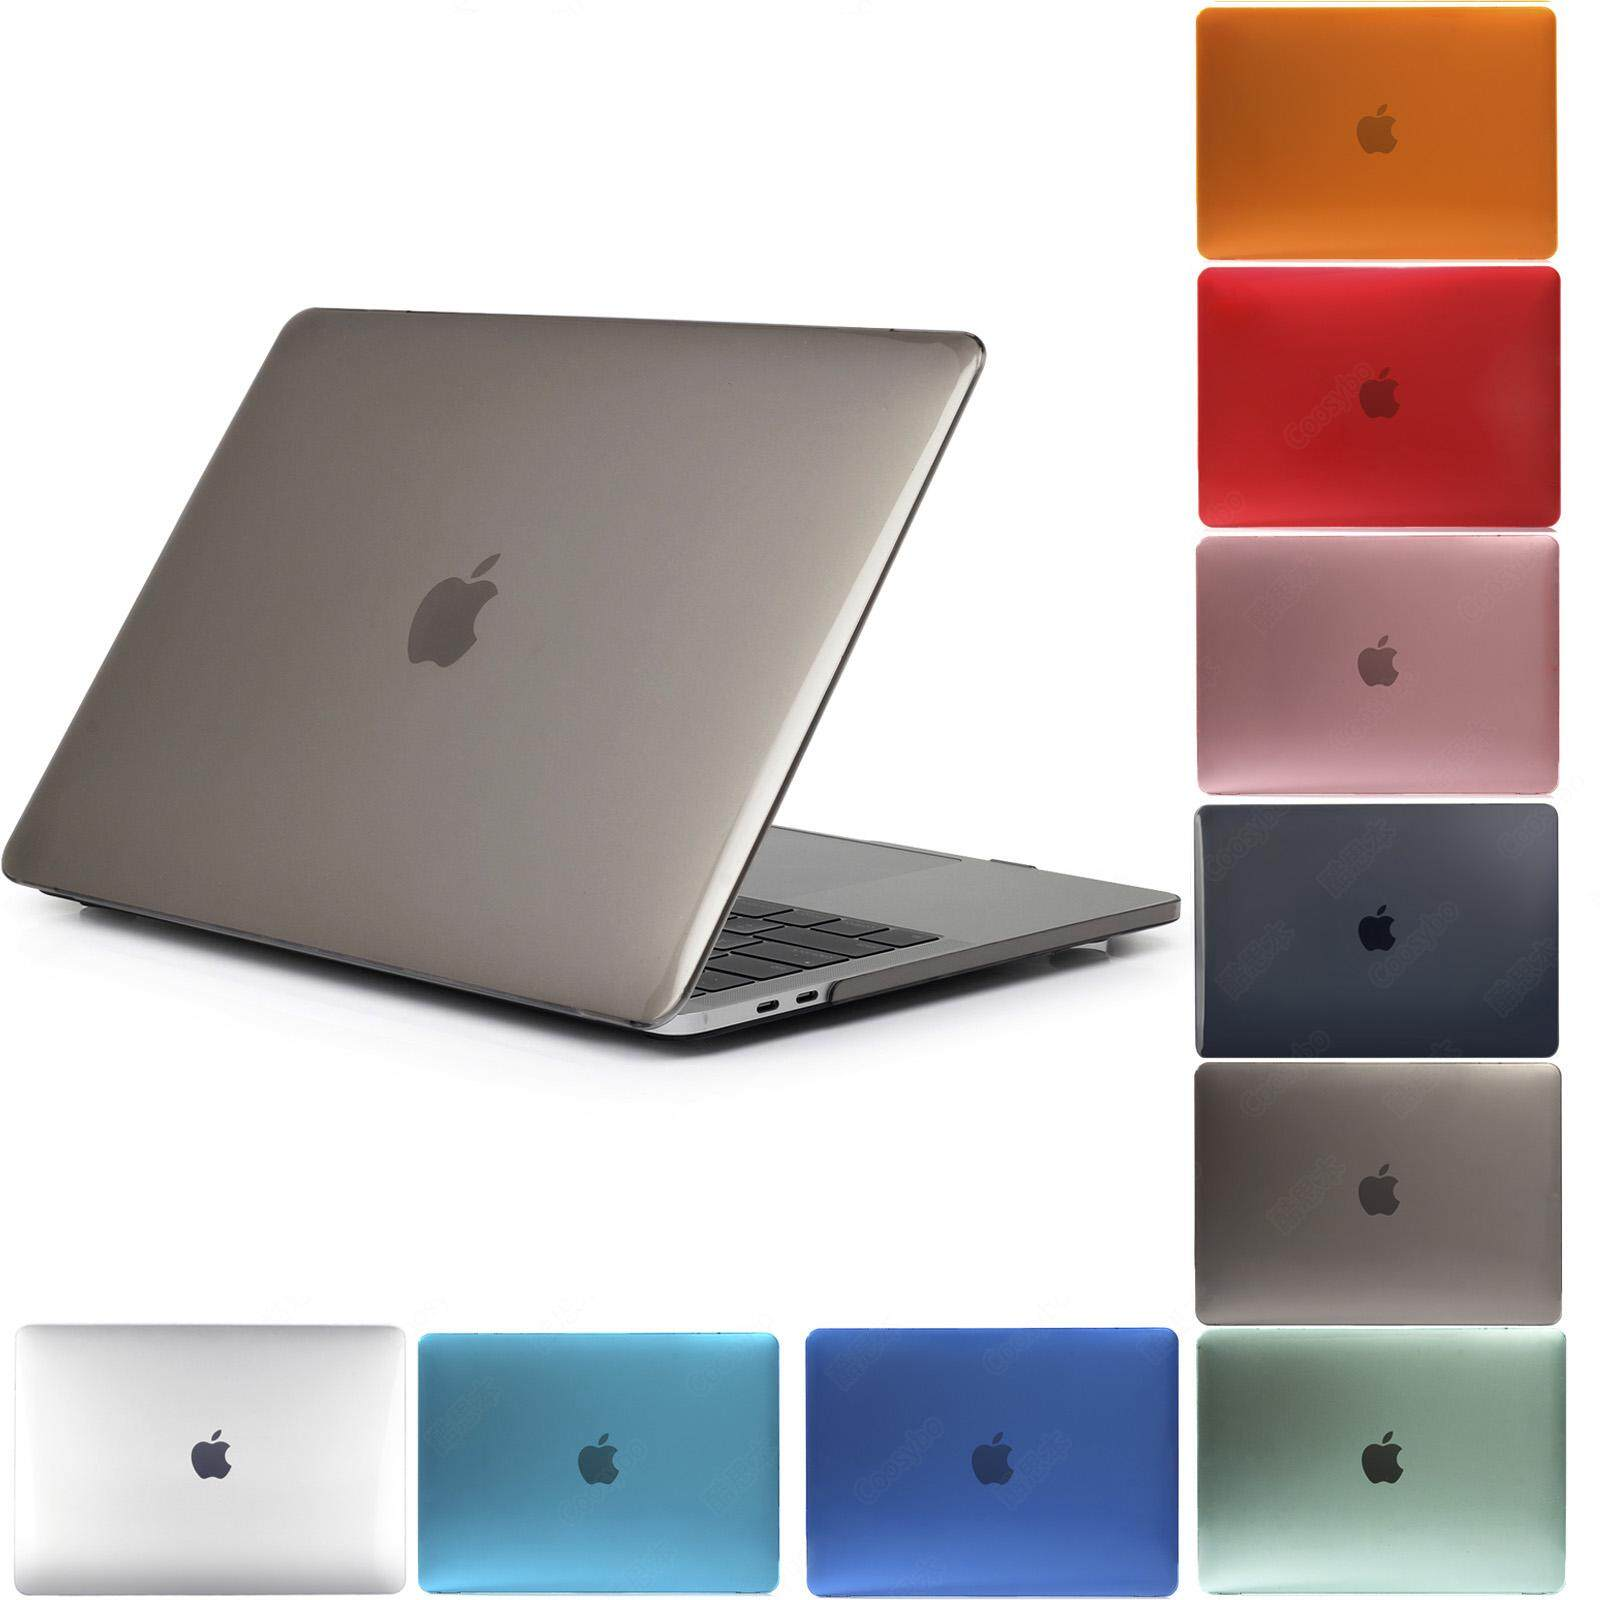 13 Pro (USB-C port) Case, Crystal Hard Cover for 2016-2019 Macbook Pro 13.3 inch with/without Touch Bar, Transparent